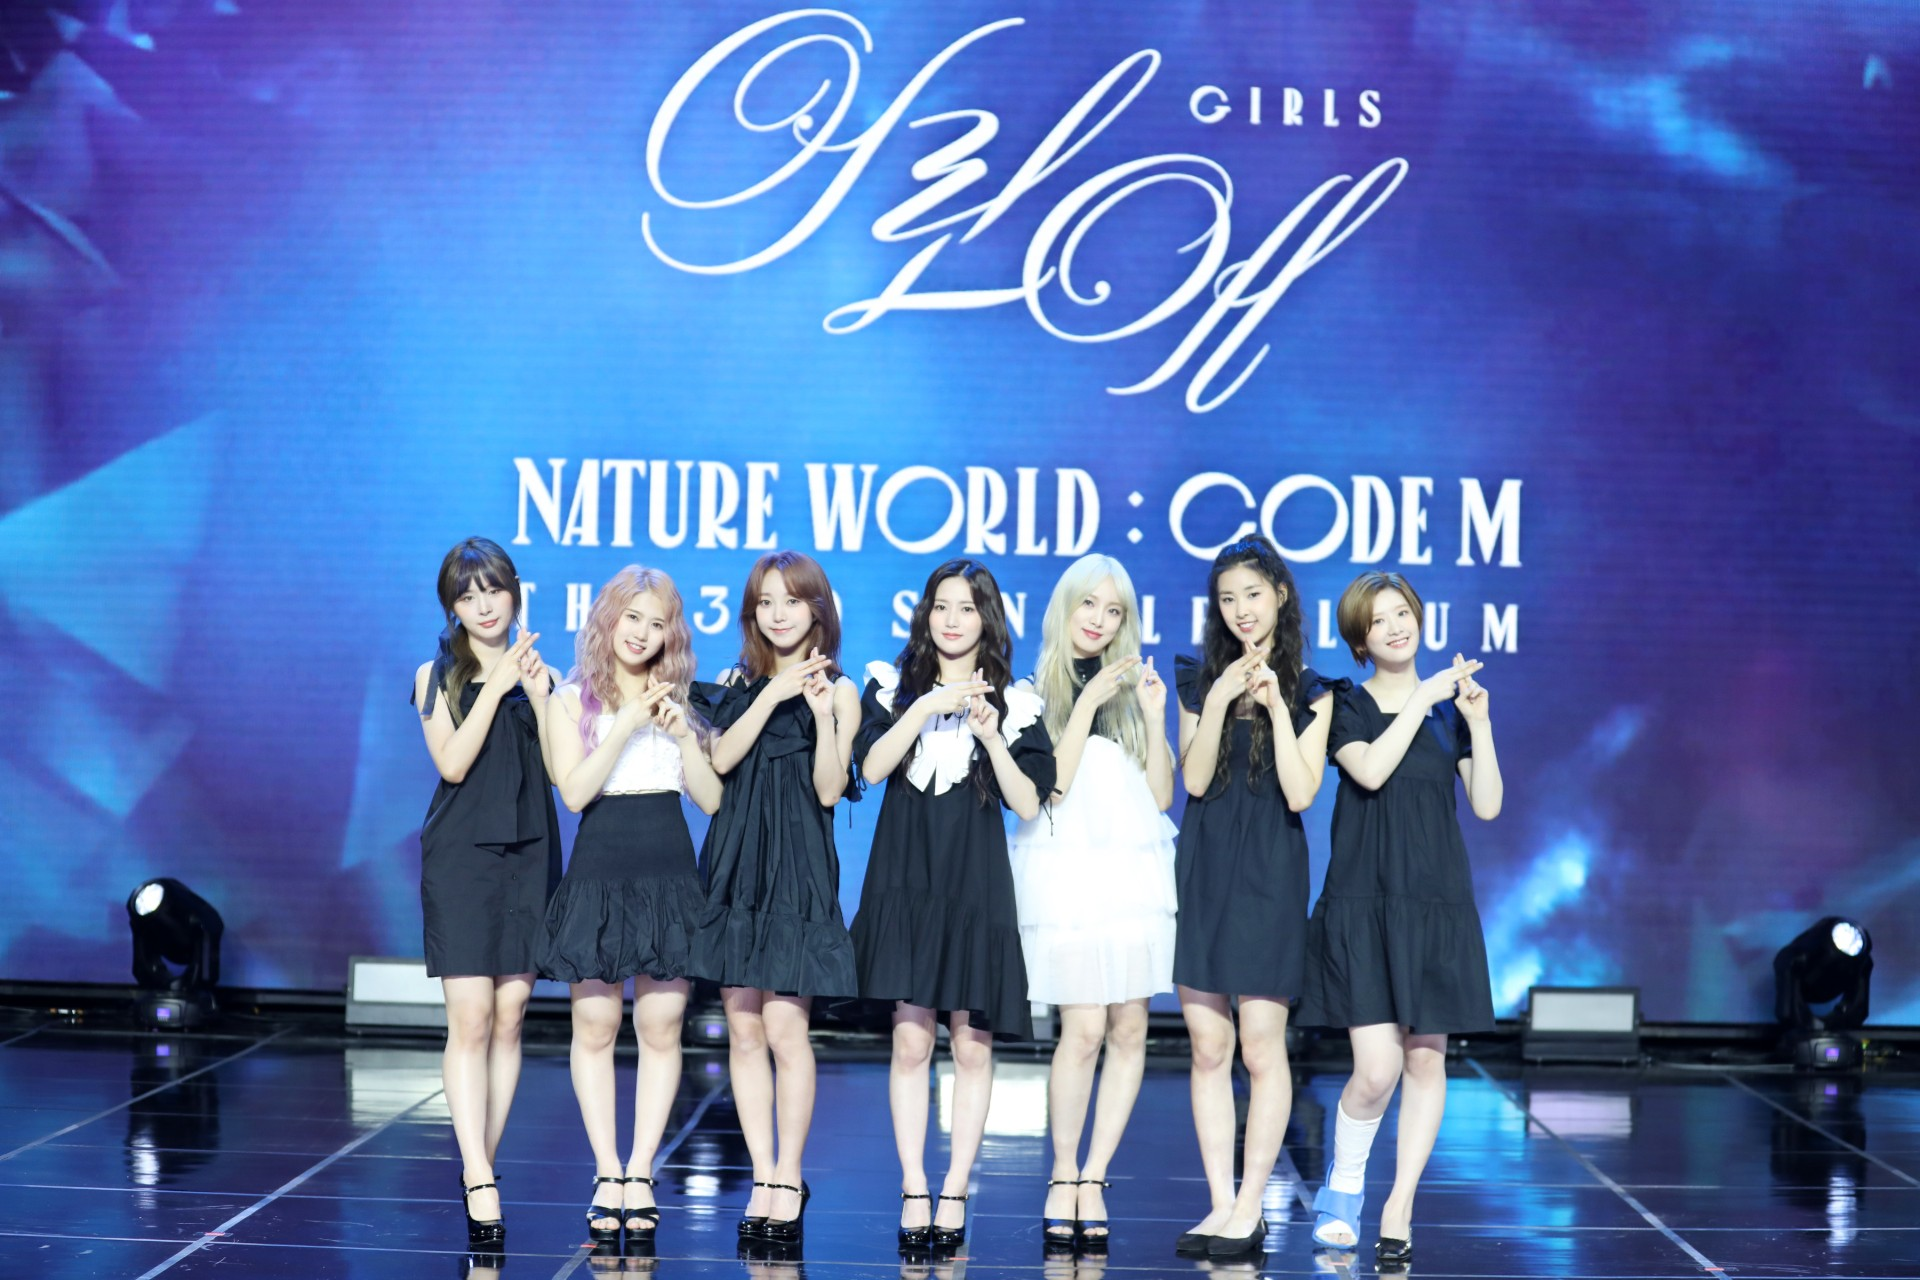 NATURE, who held the online media showcase at 2 PM on the 17th marking the album release of NATURE WORLD: CODE M (Photo Credit=n.CH Entertainment)